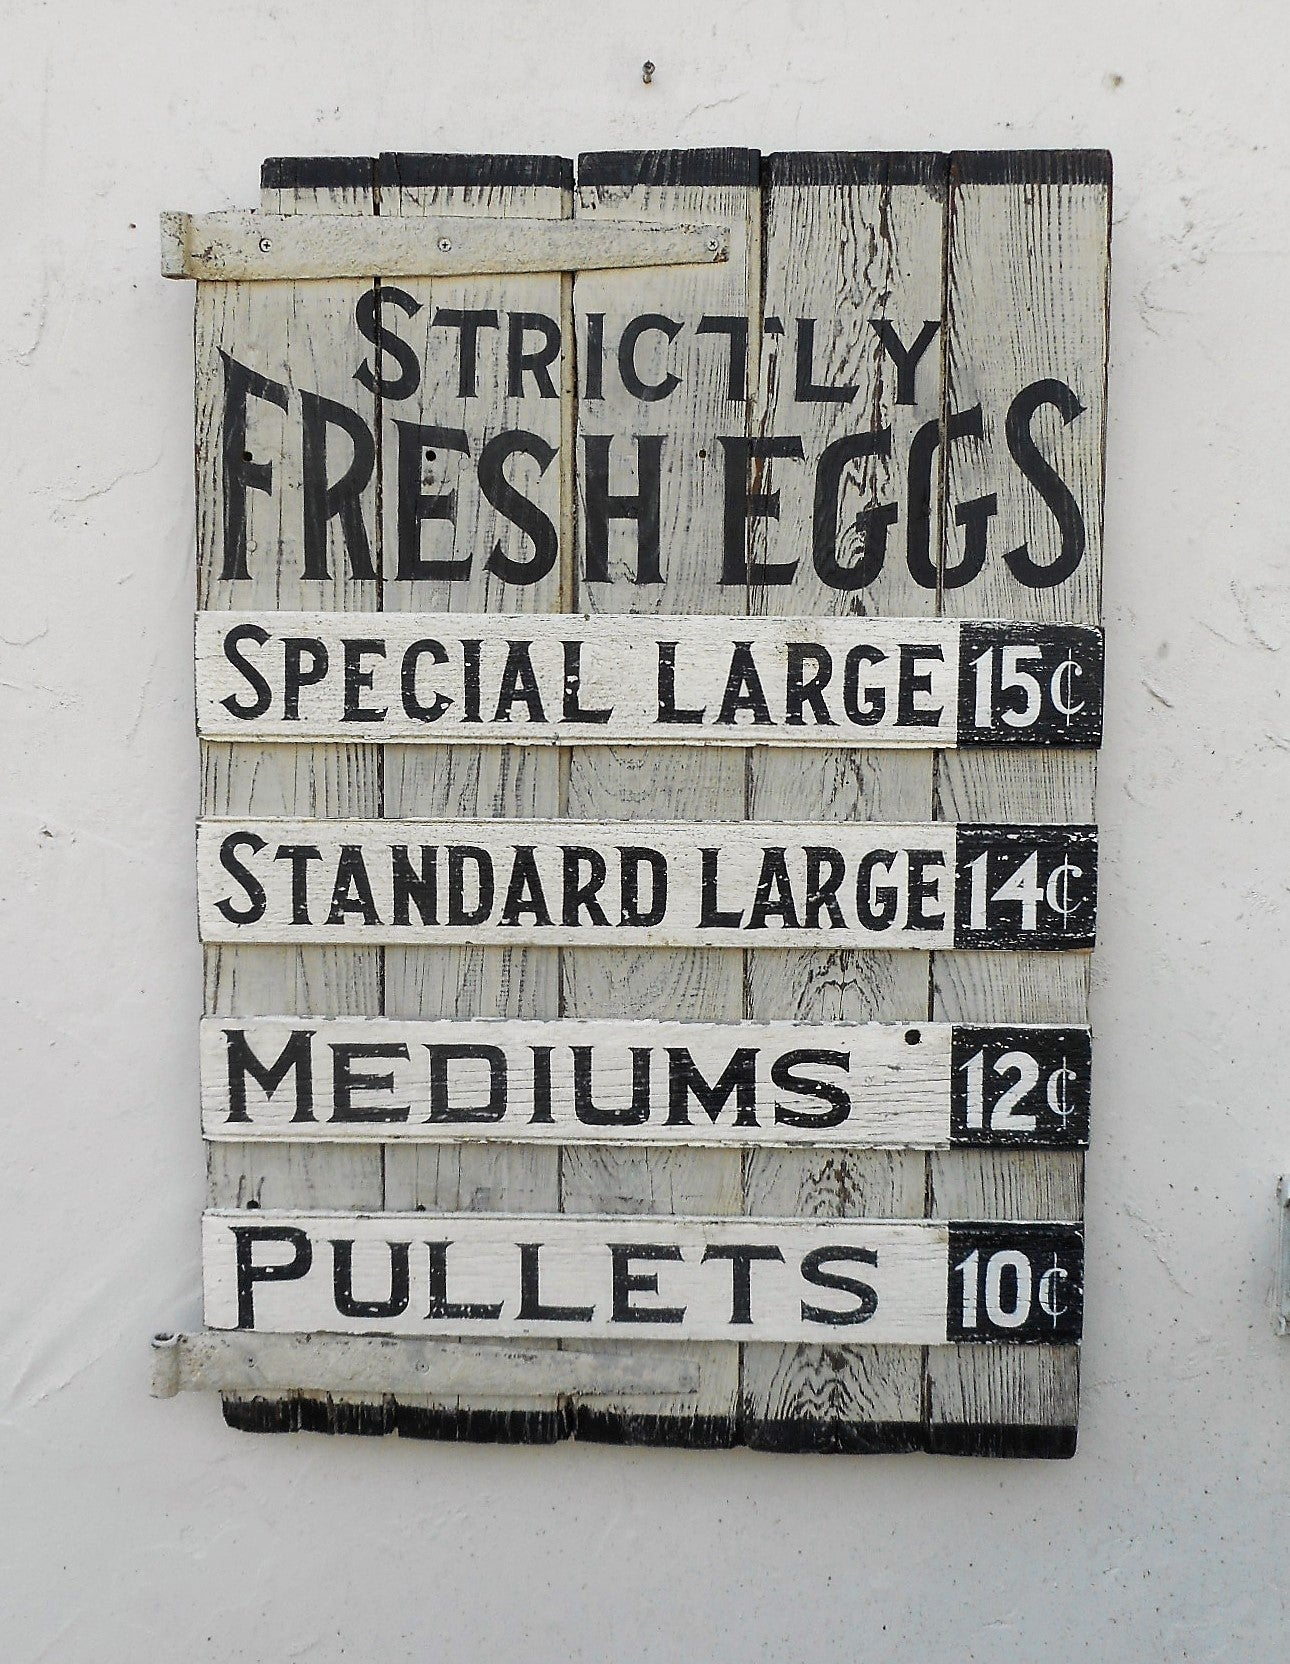 Strictly Fresh Eggs